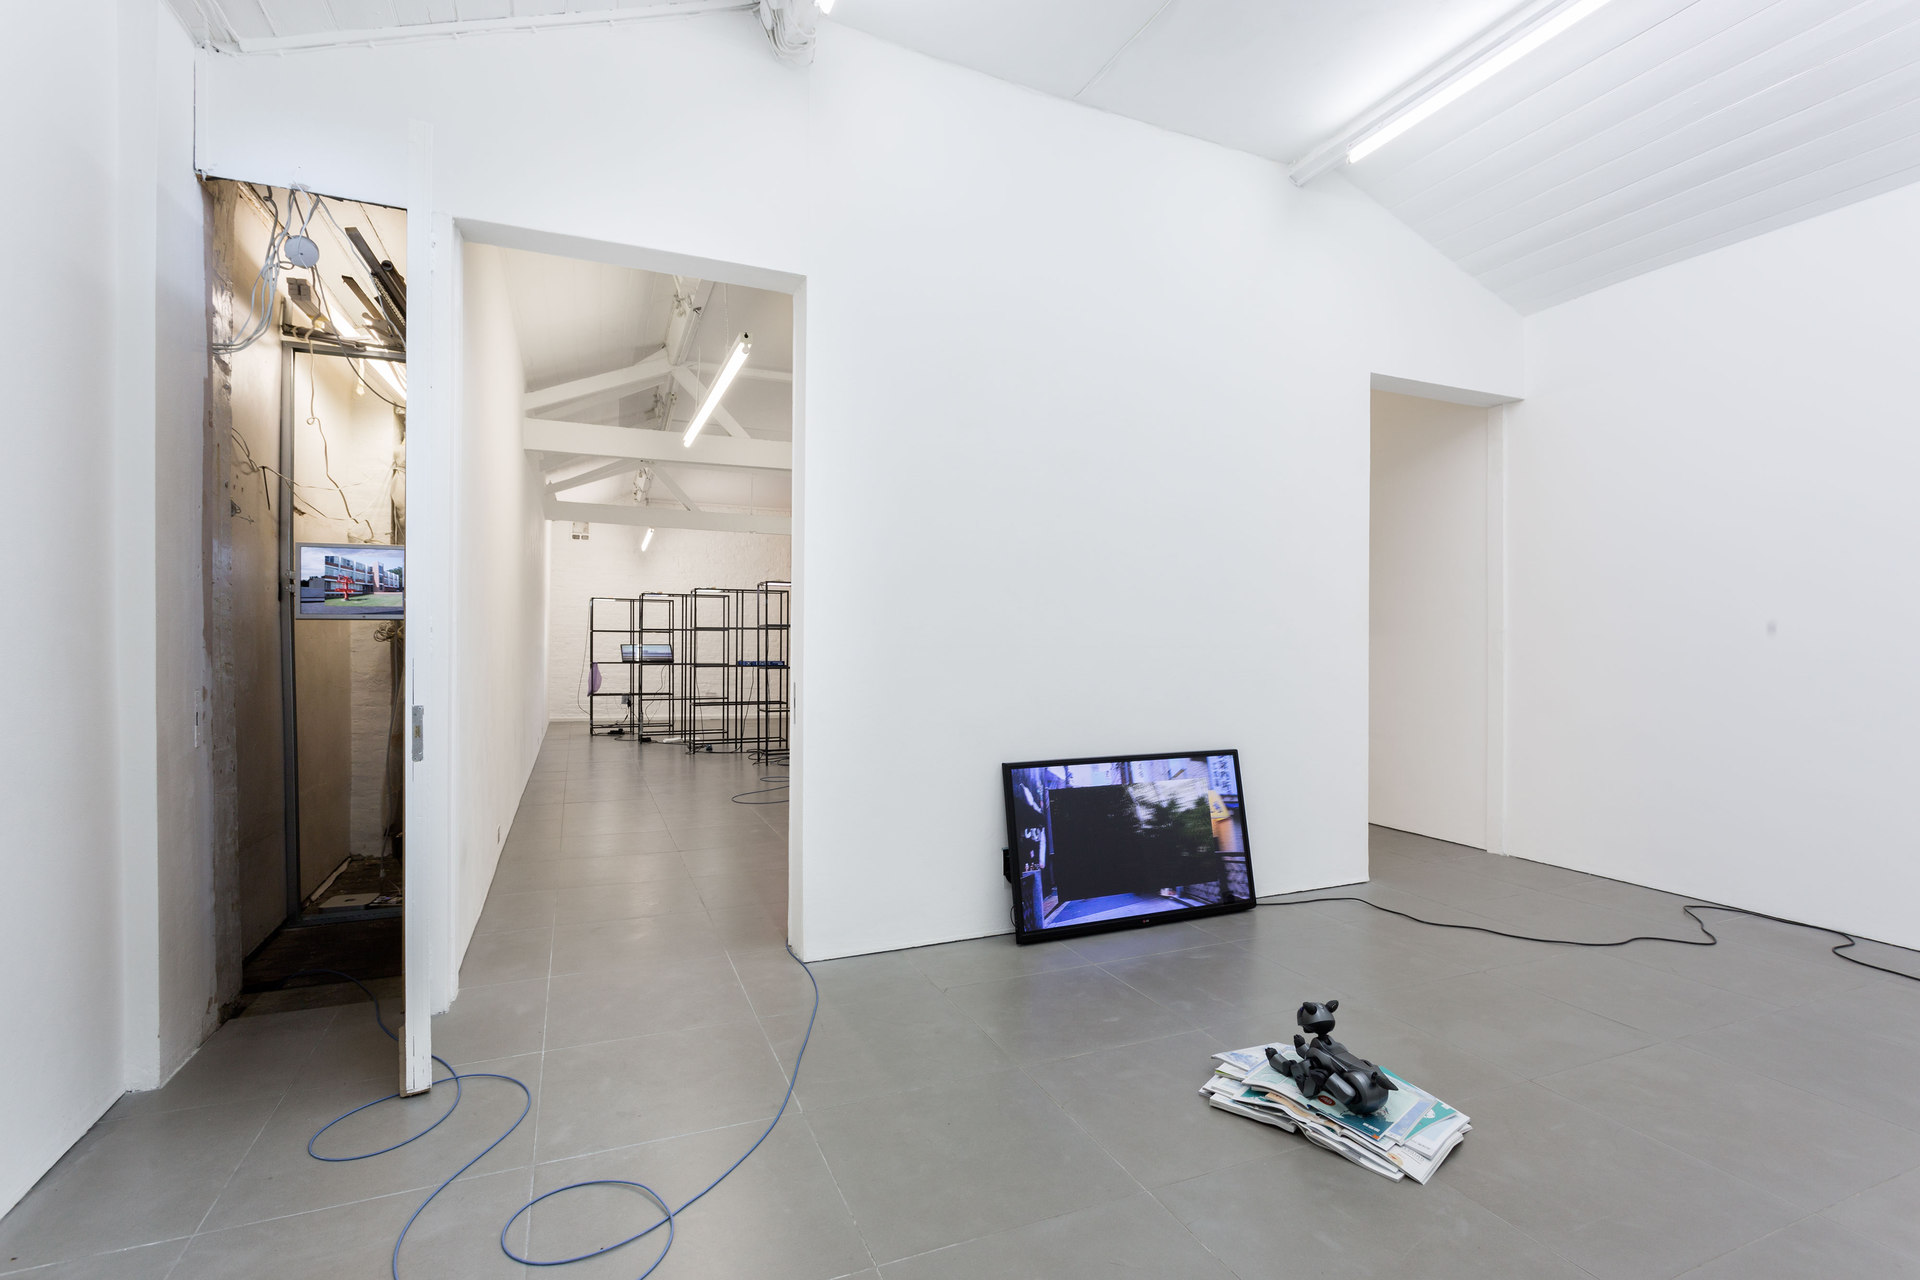 Yuri Pattison, Free Traveller, 2014, installation view, Cell Project Space